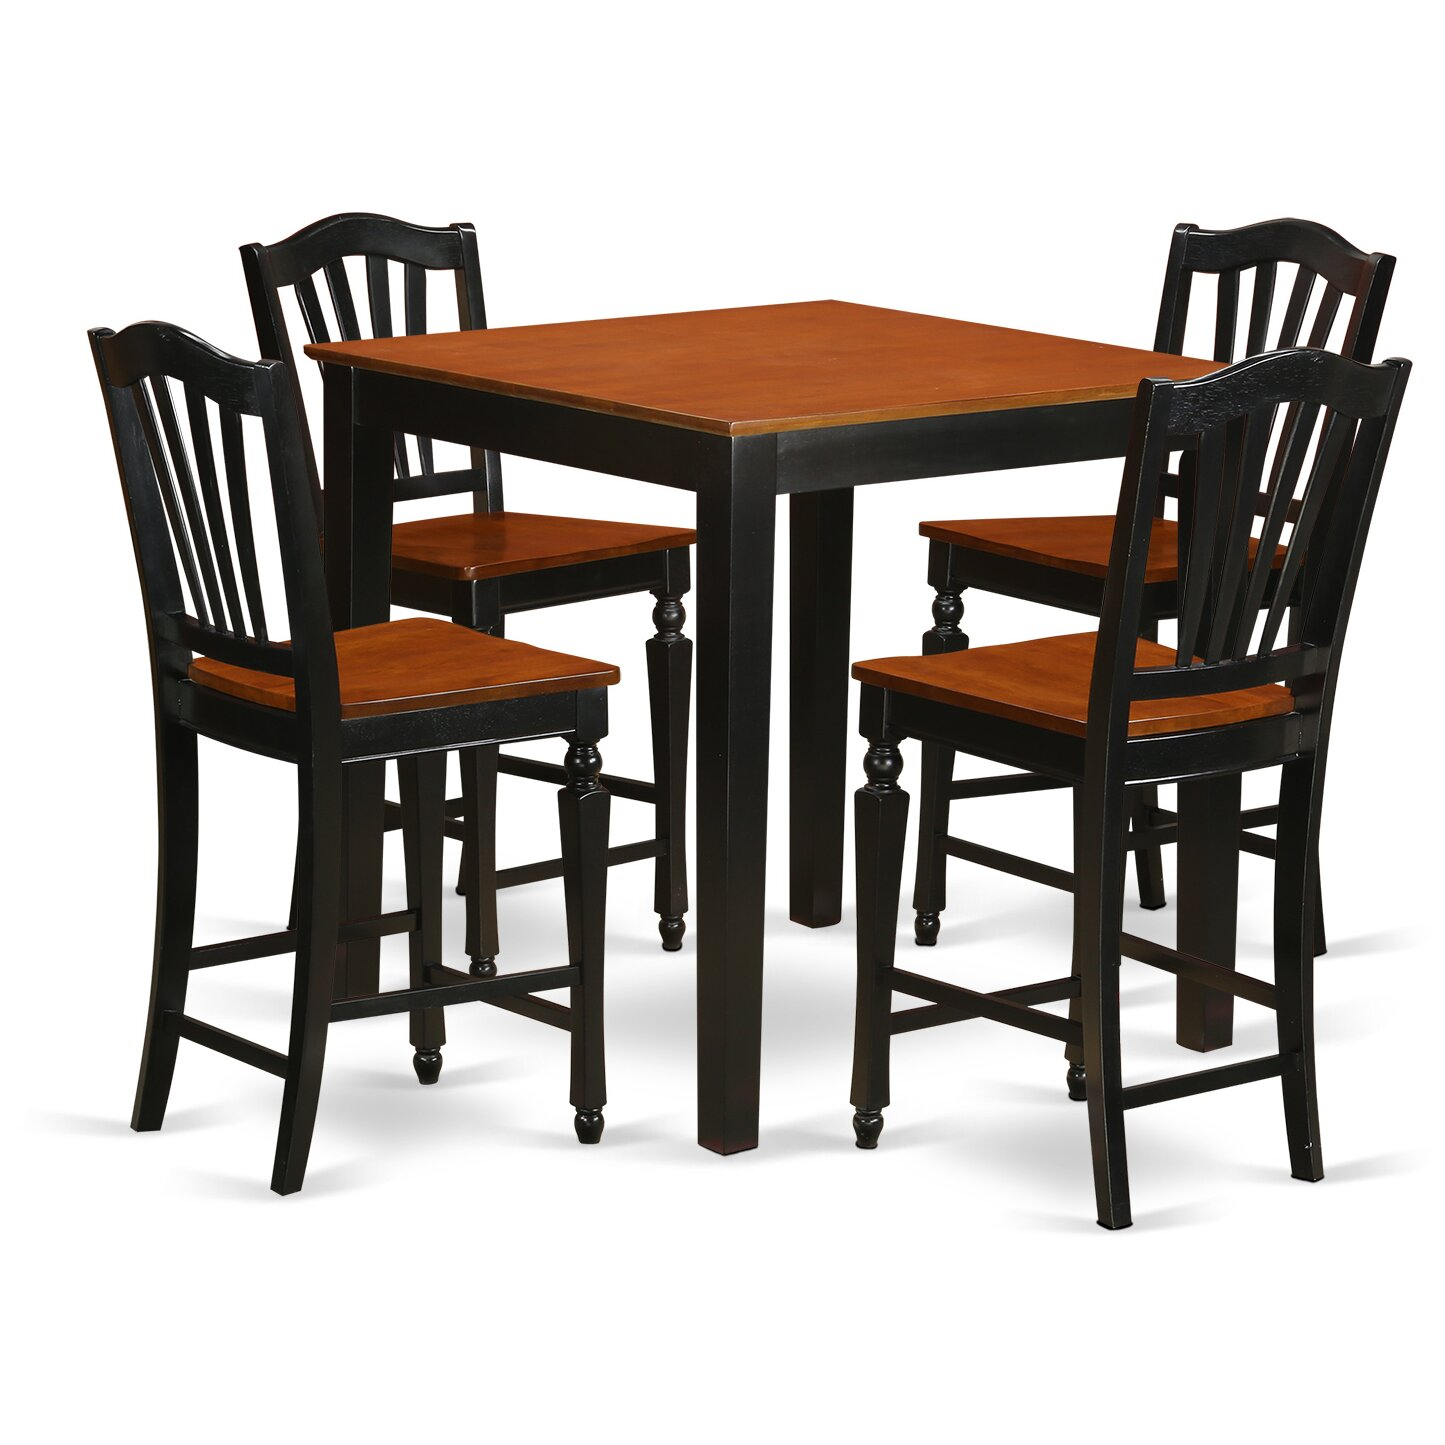 East west 5 piece counter height pub table set wayfair for High top kitchen table set